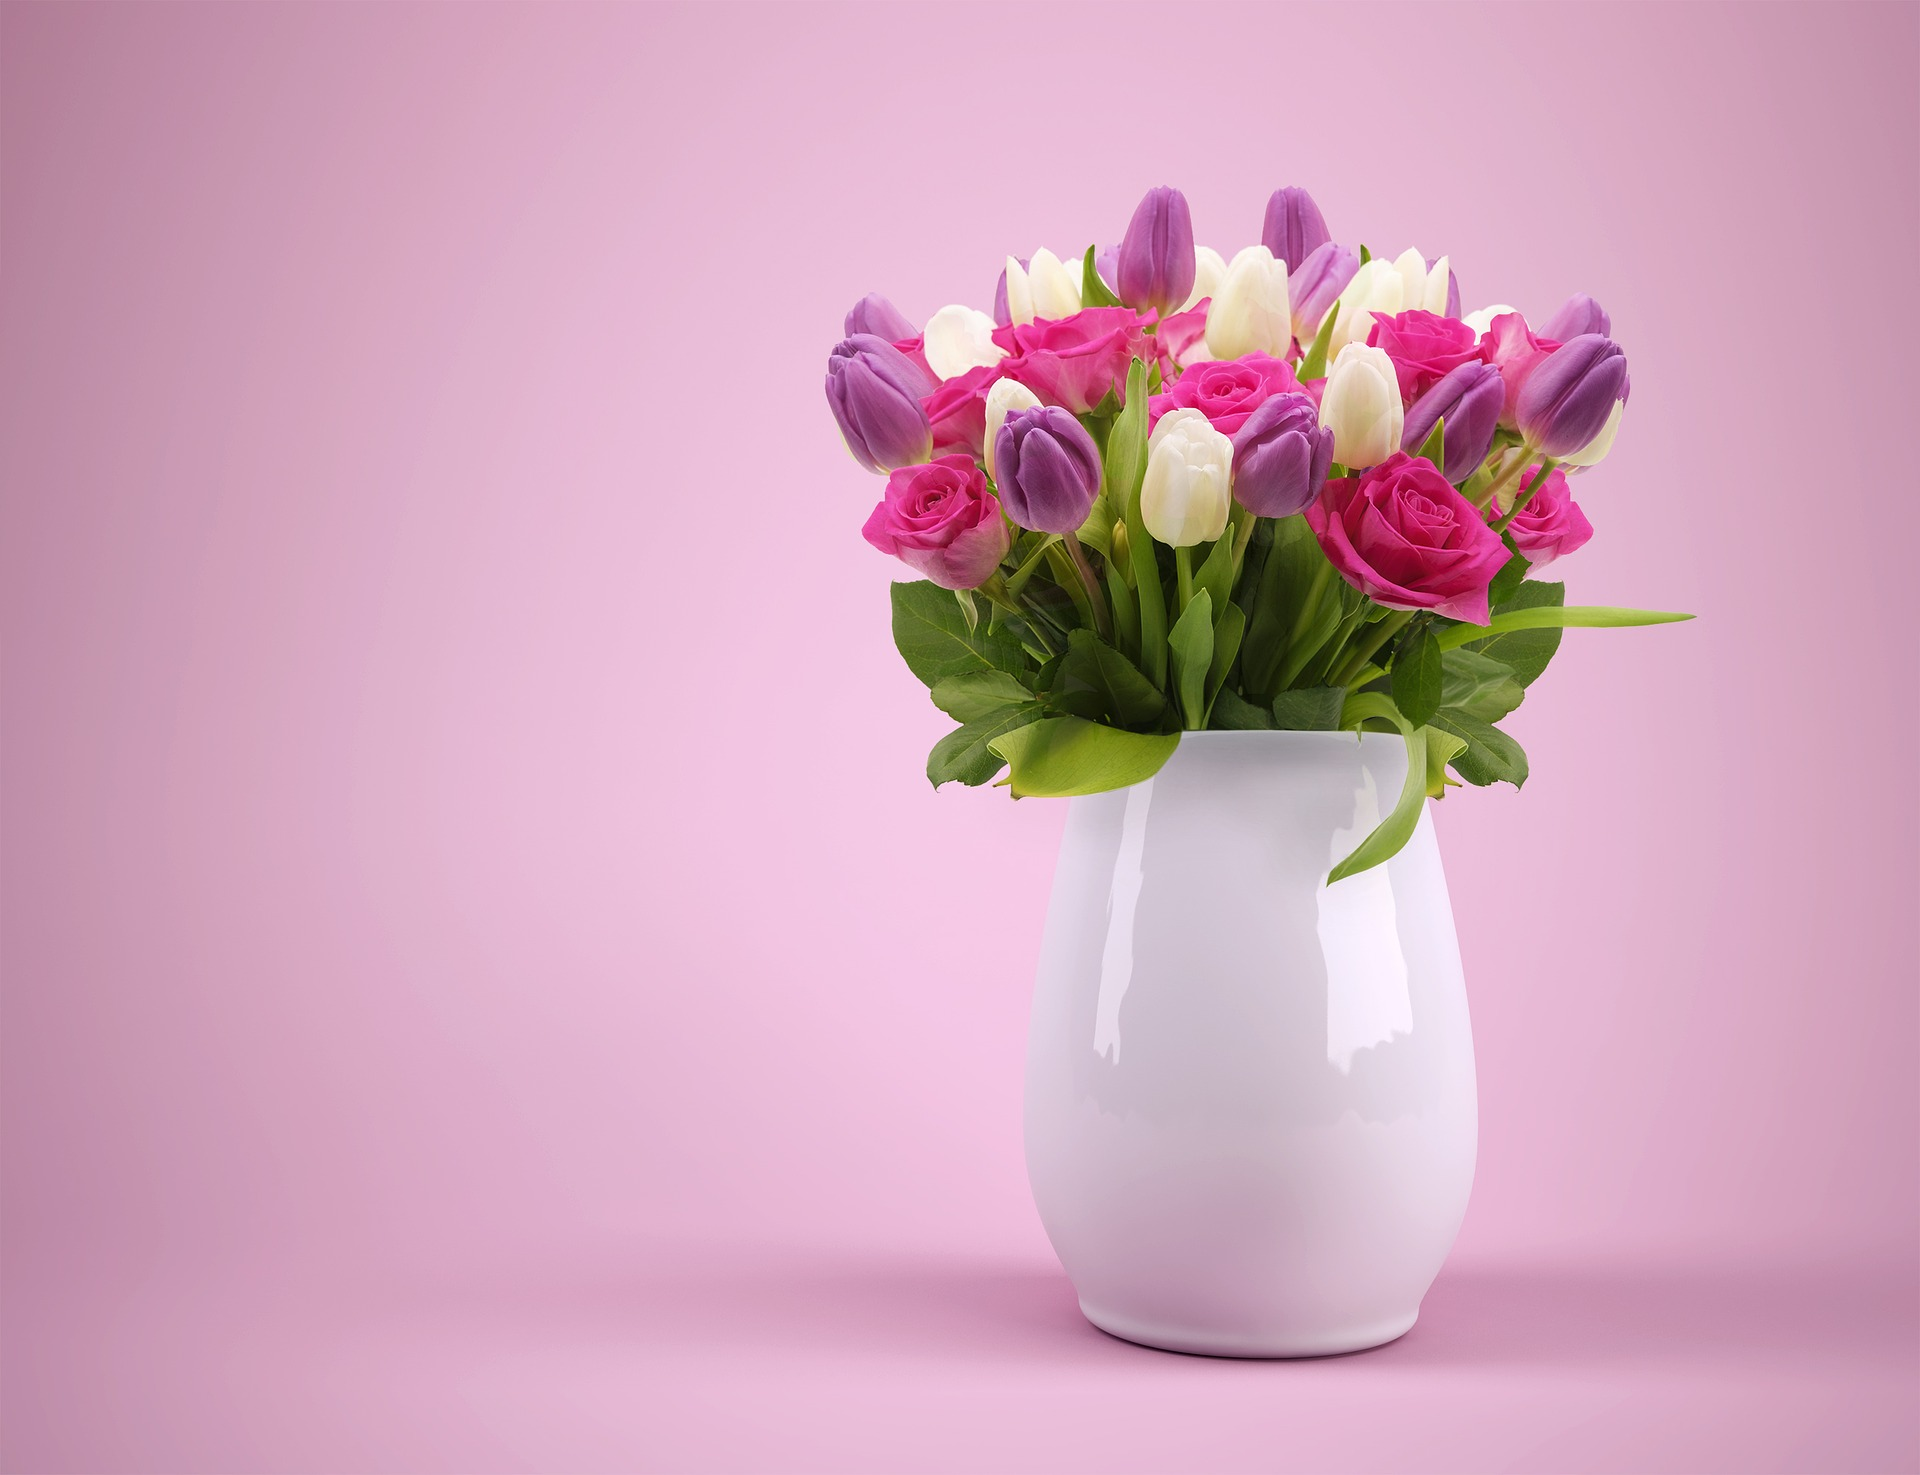 How to Choose the Perfect vase for Cut Flowers